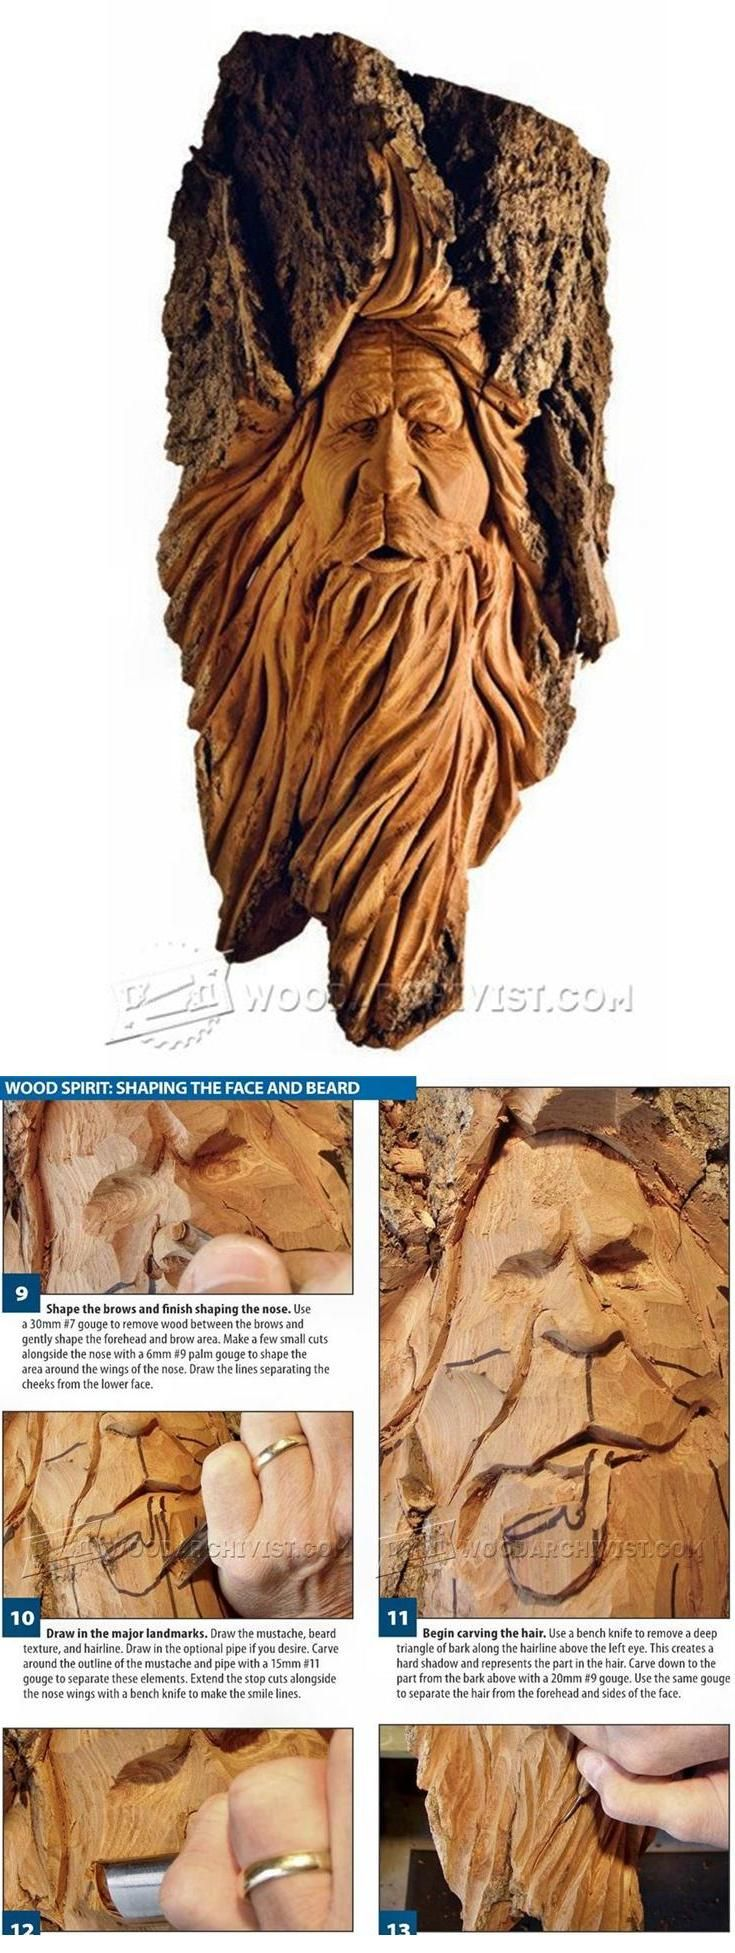 Best images about wood carving sculpture on